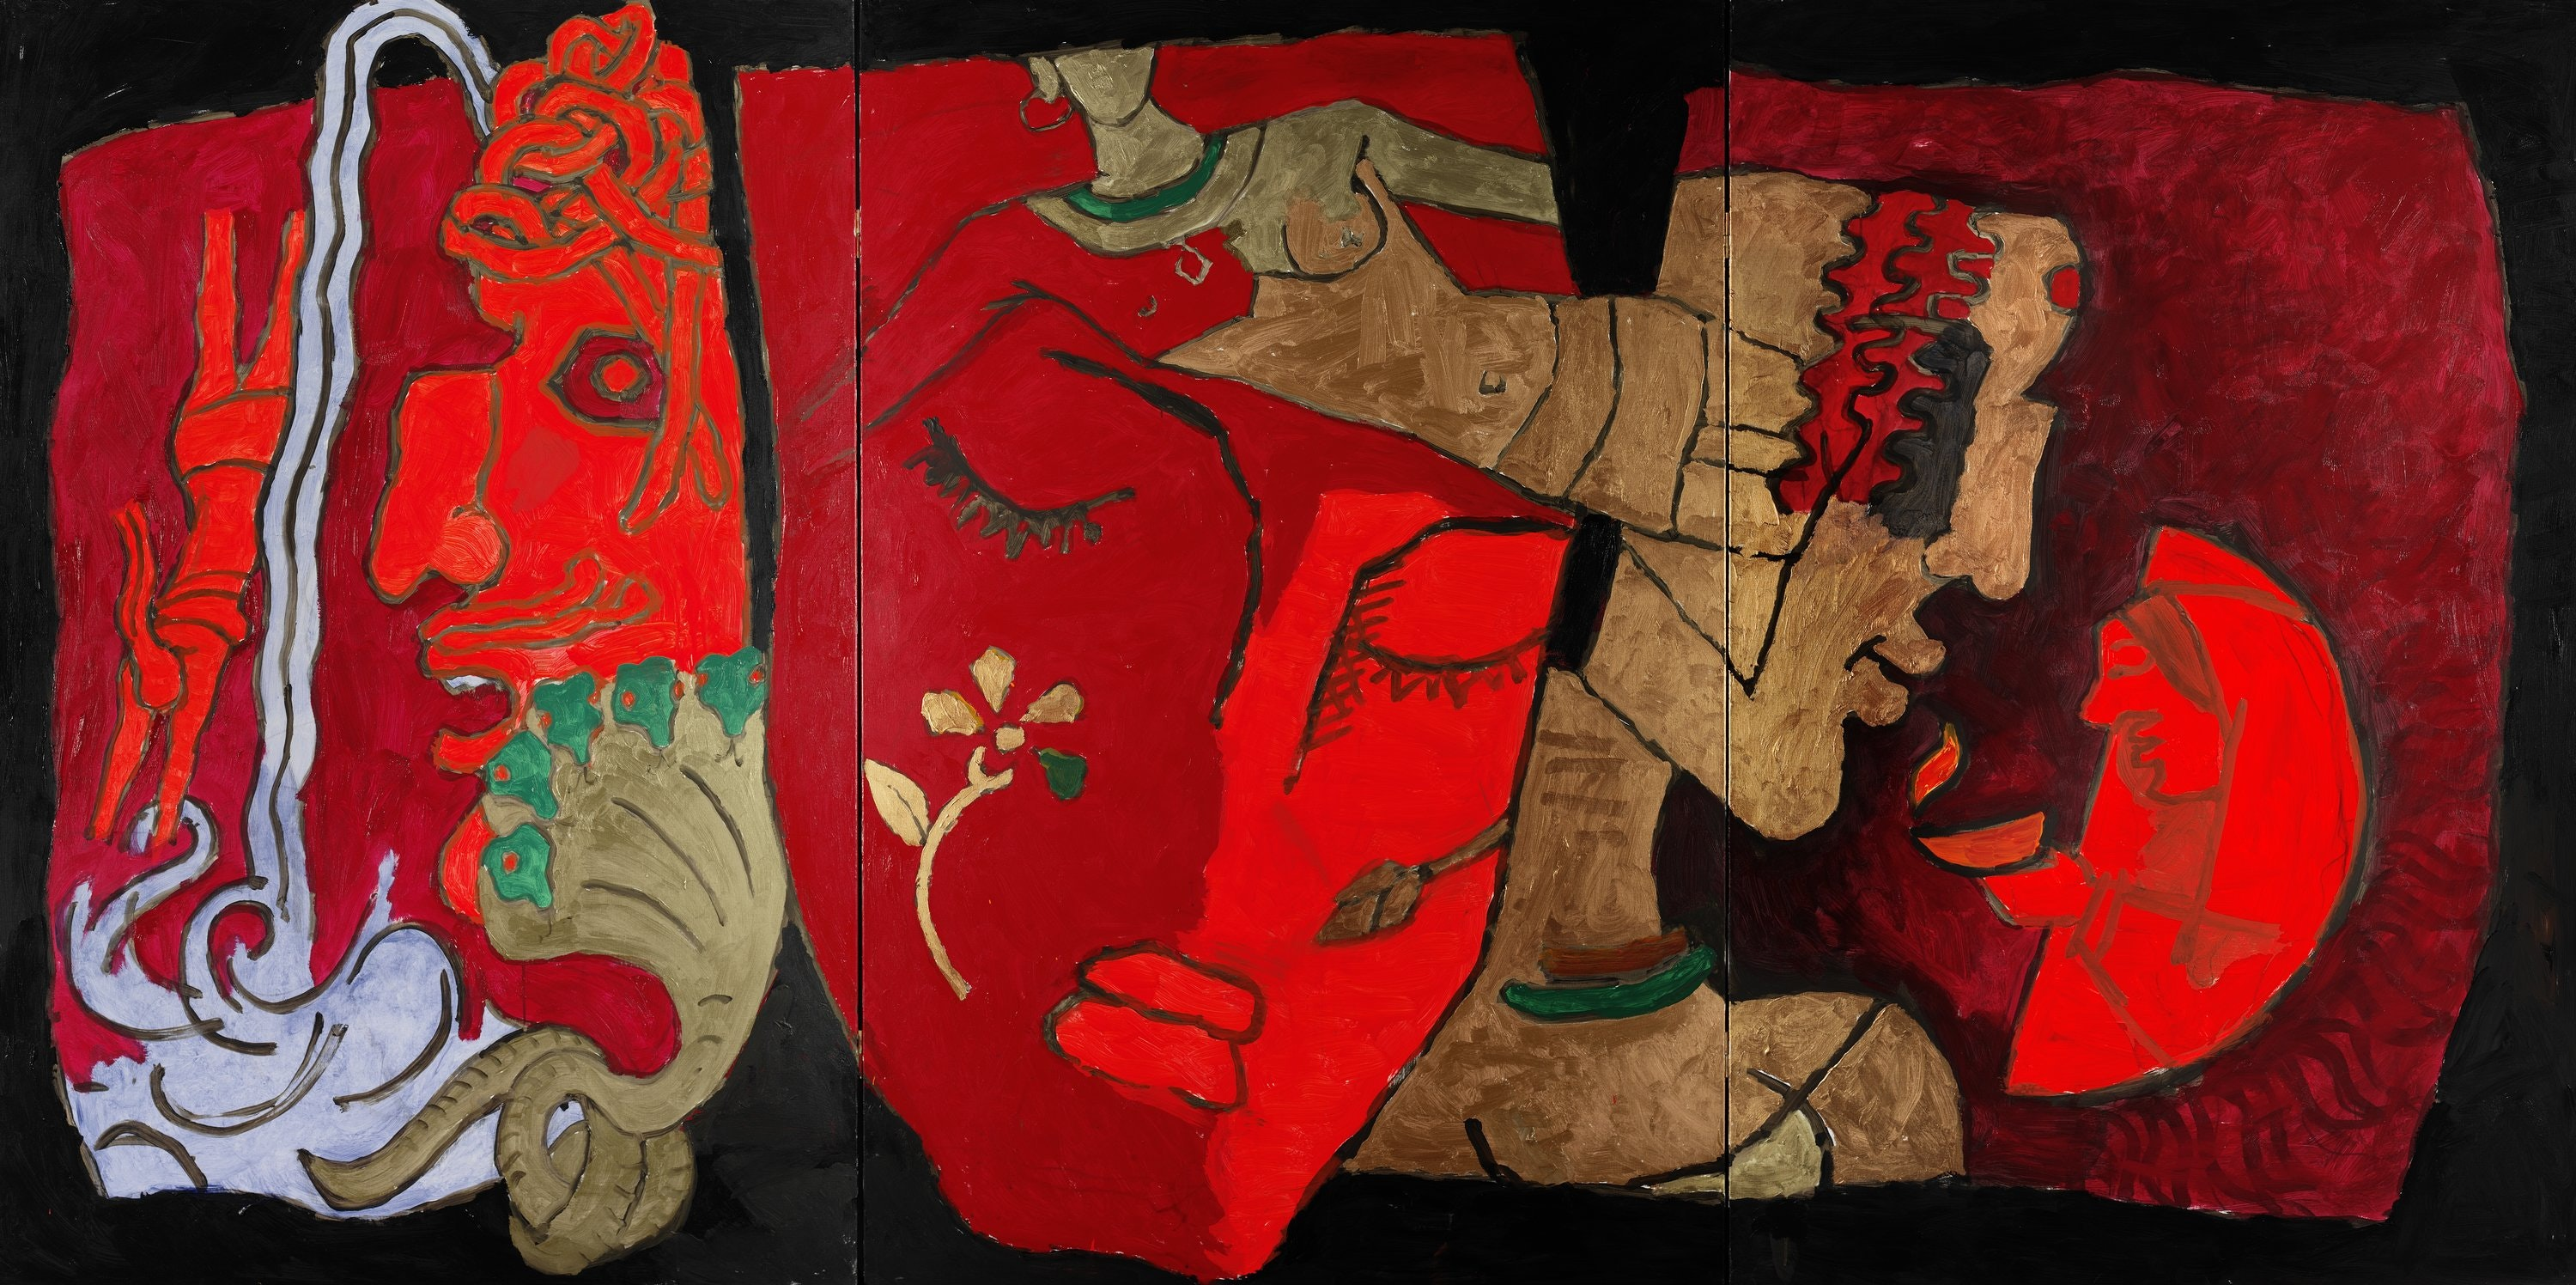 A large painting in mostly red featuring a face.